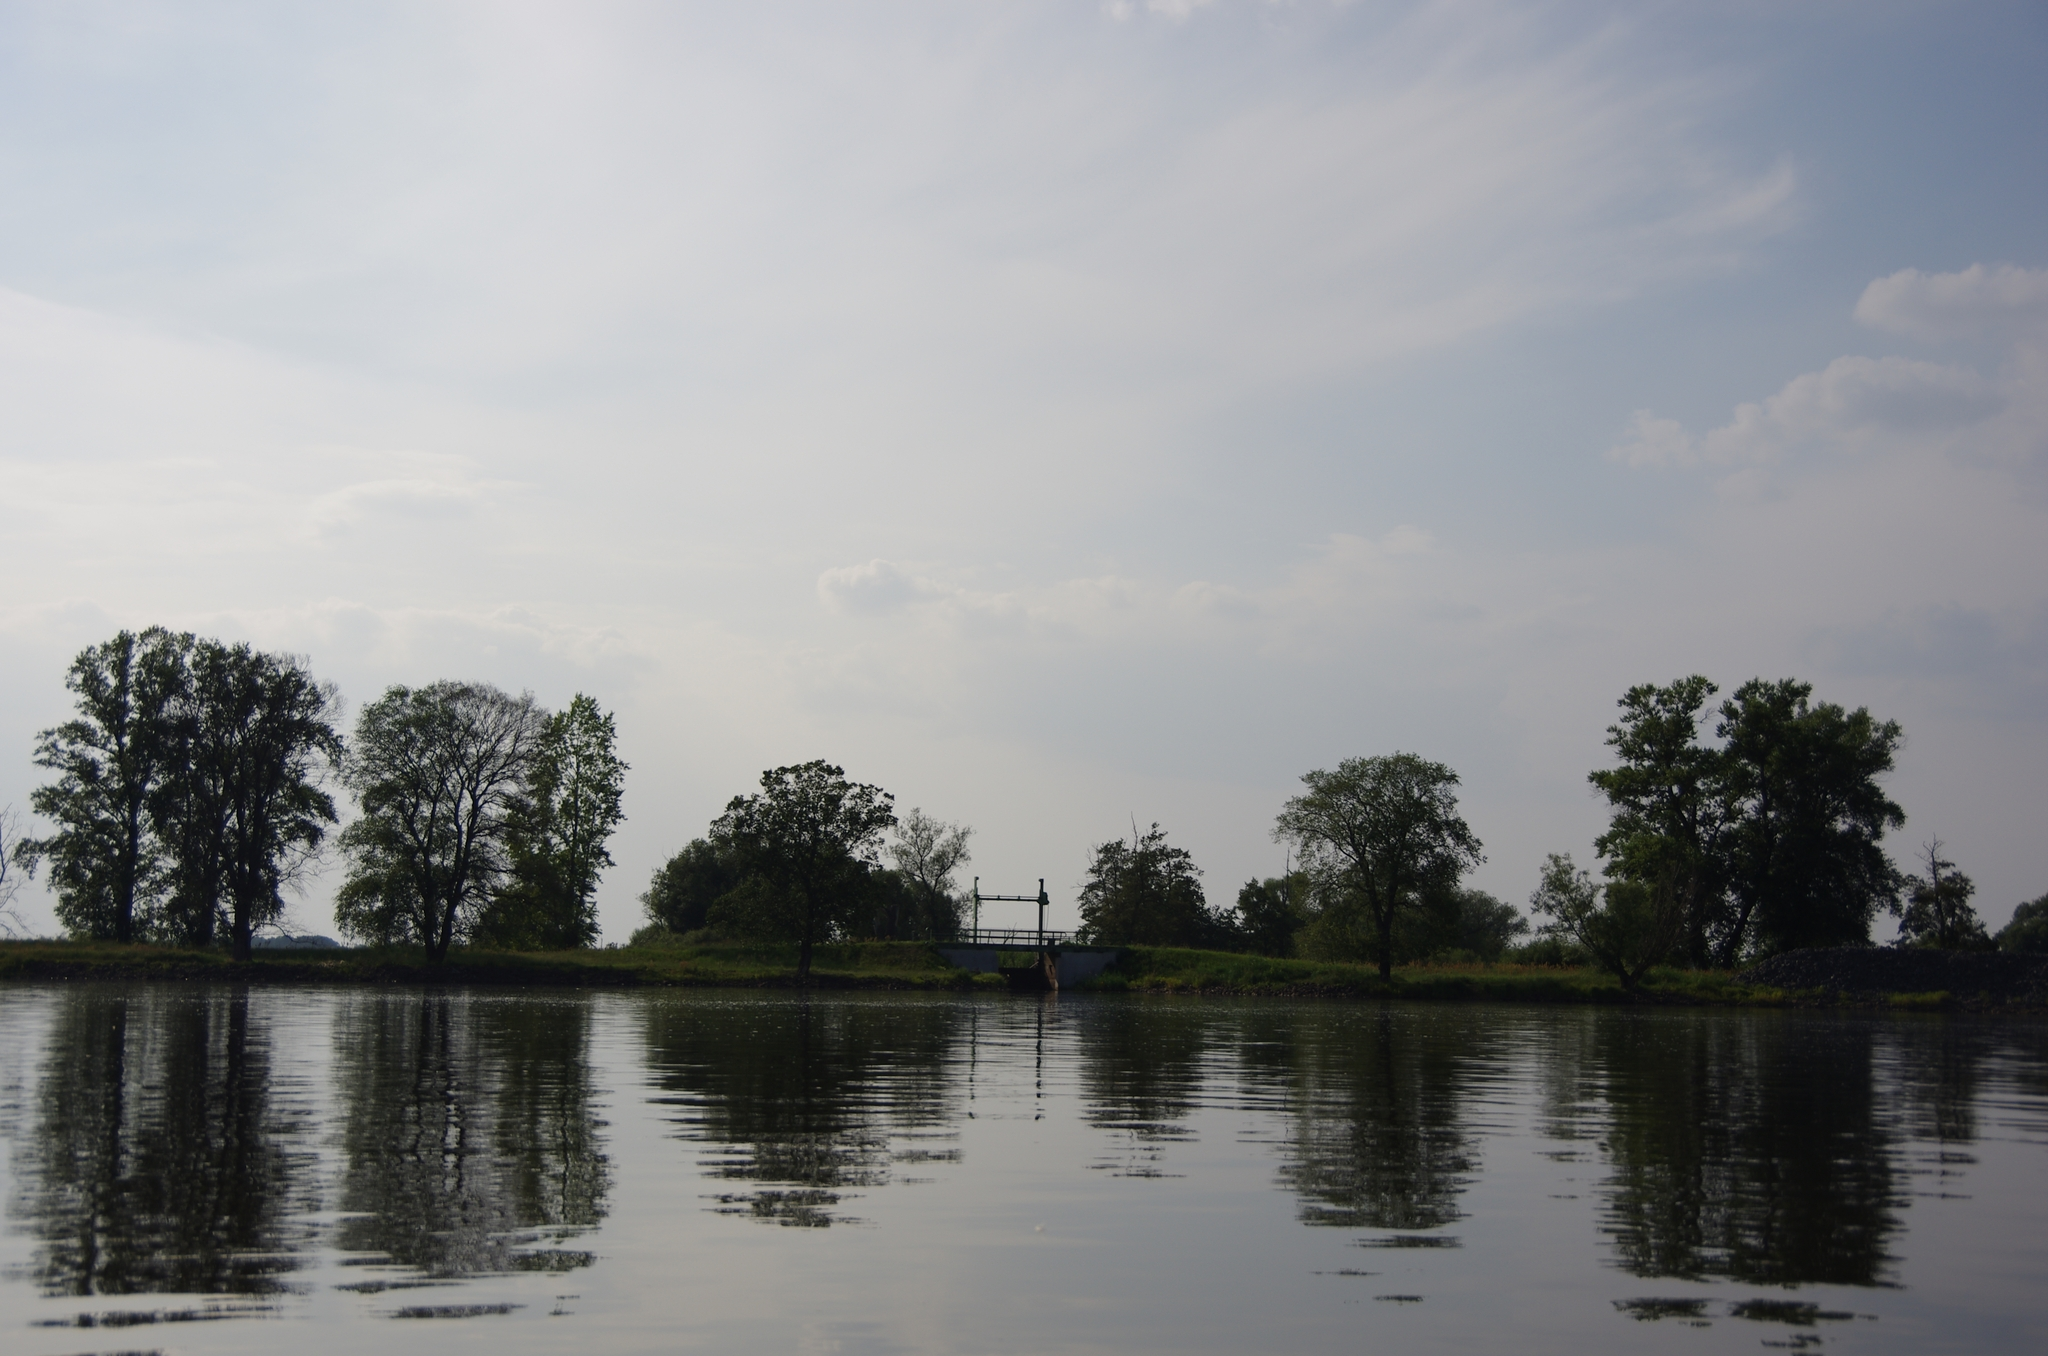 kayaking-odra-east-and-west_16-28-53_25-07-2016